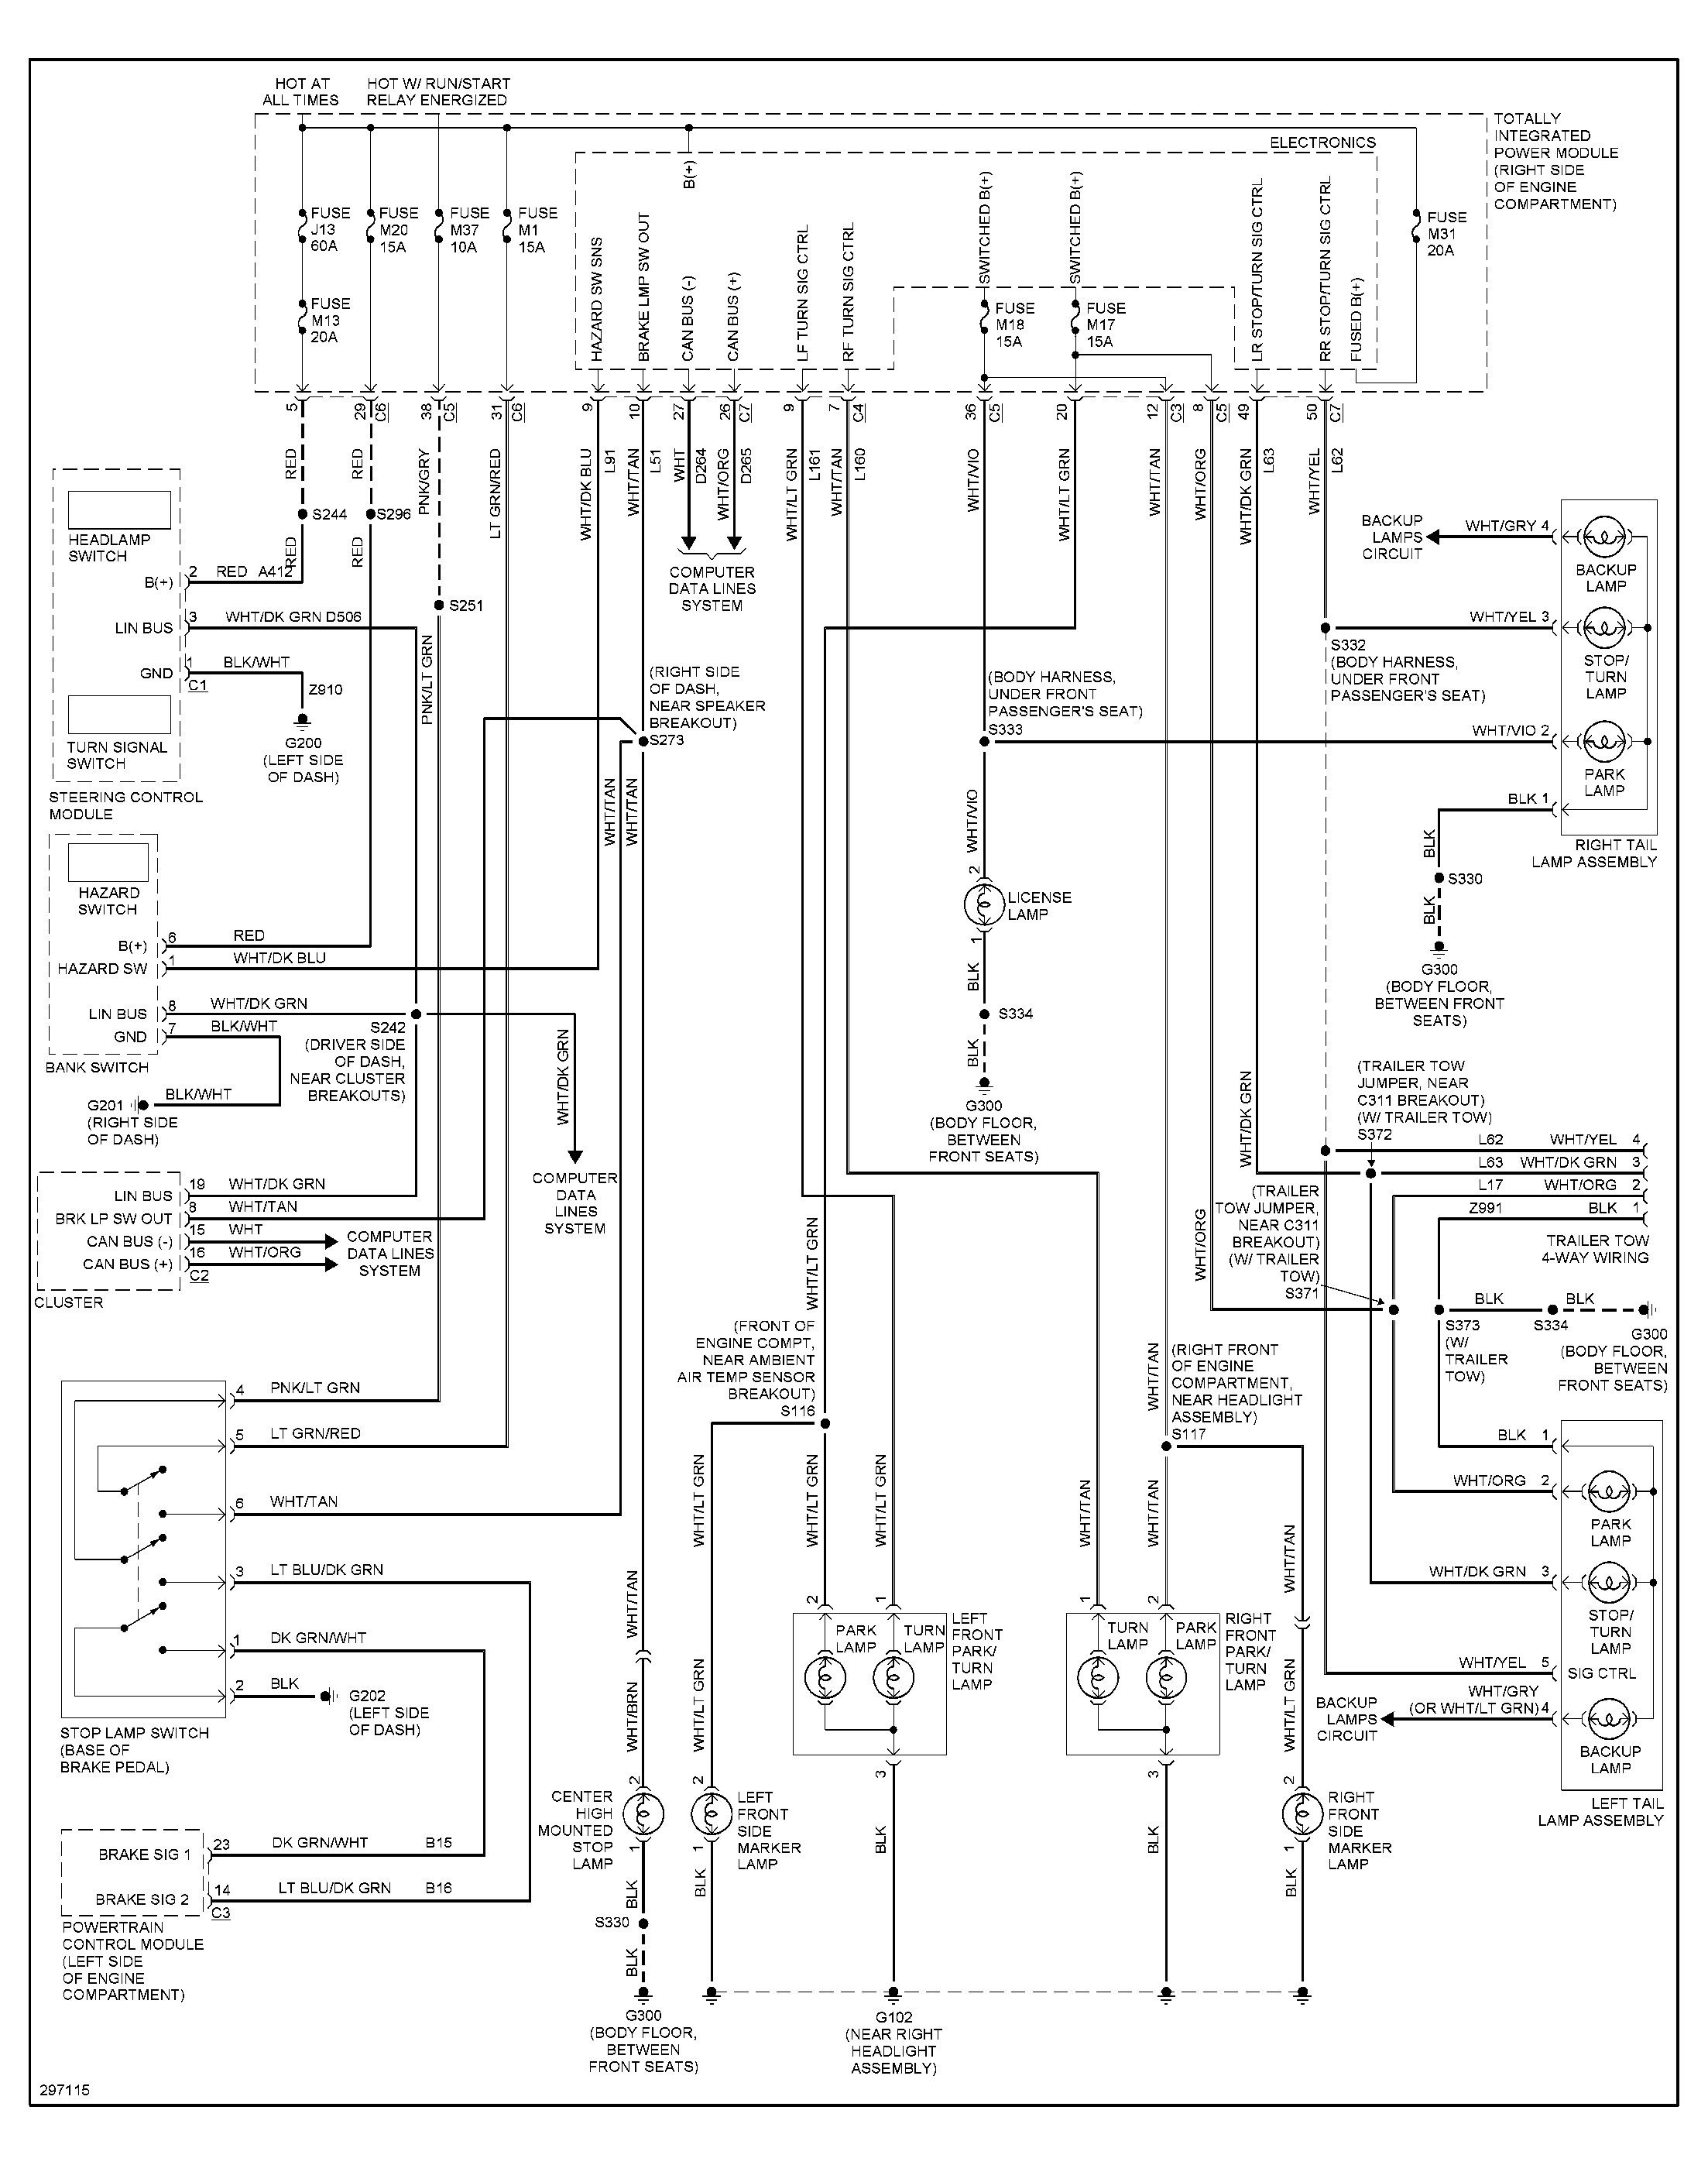 Wiring Diagram For 2005 Jeep Wrangler - Home Wiring Diagram fast-material -  fast-material.rossileautosrl.it | 2005 Jeep Wiring Diagram |  | fast-material.rossileautosrl.it